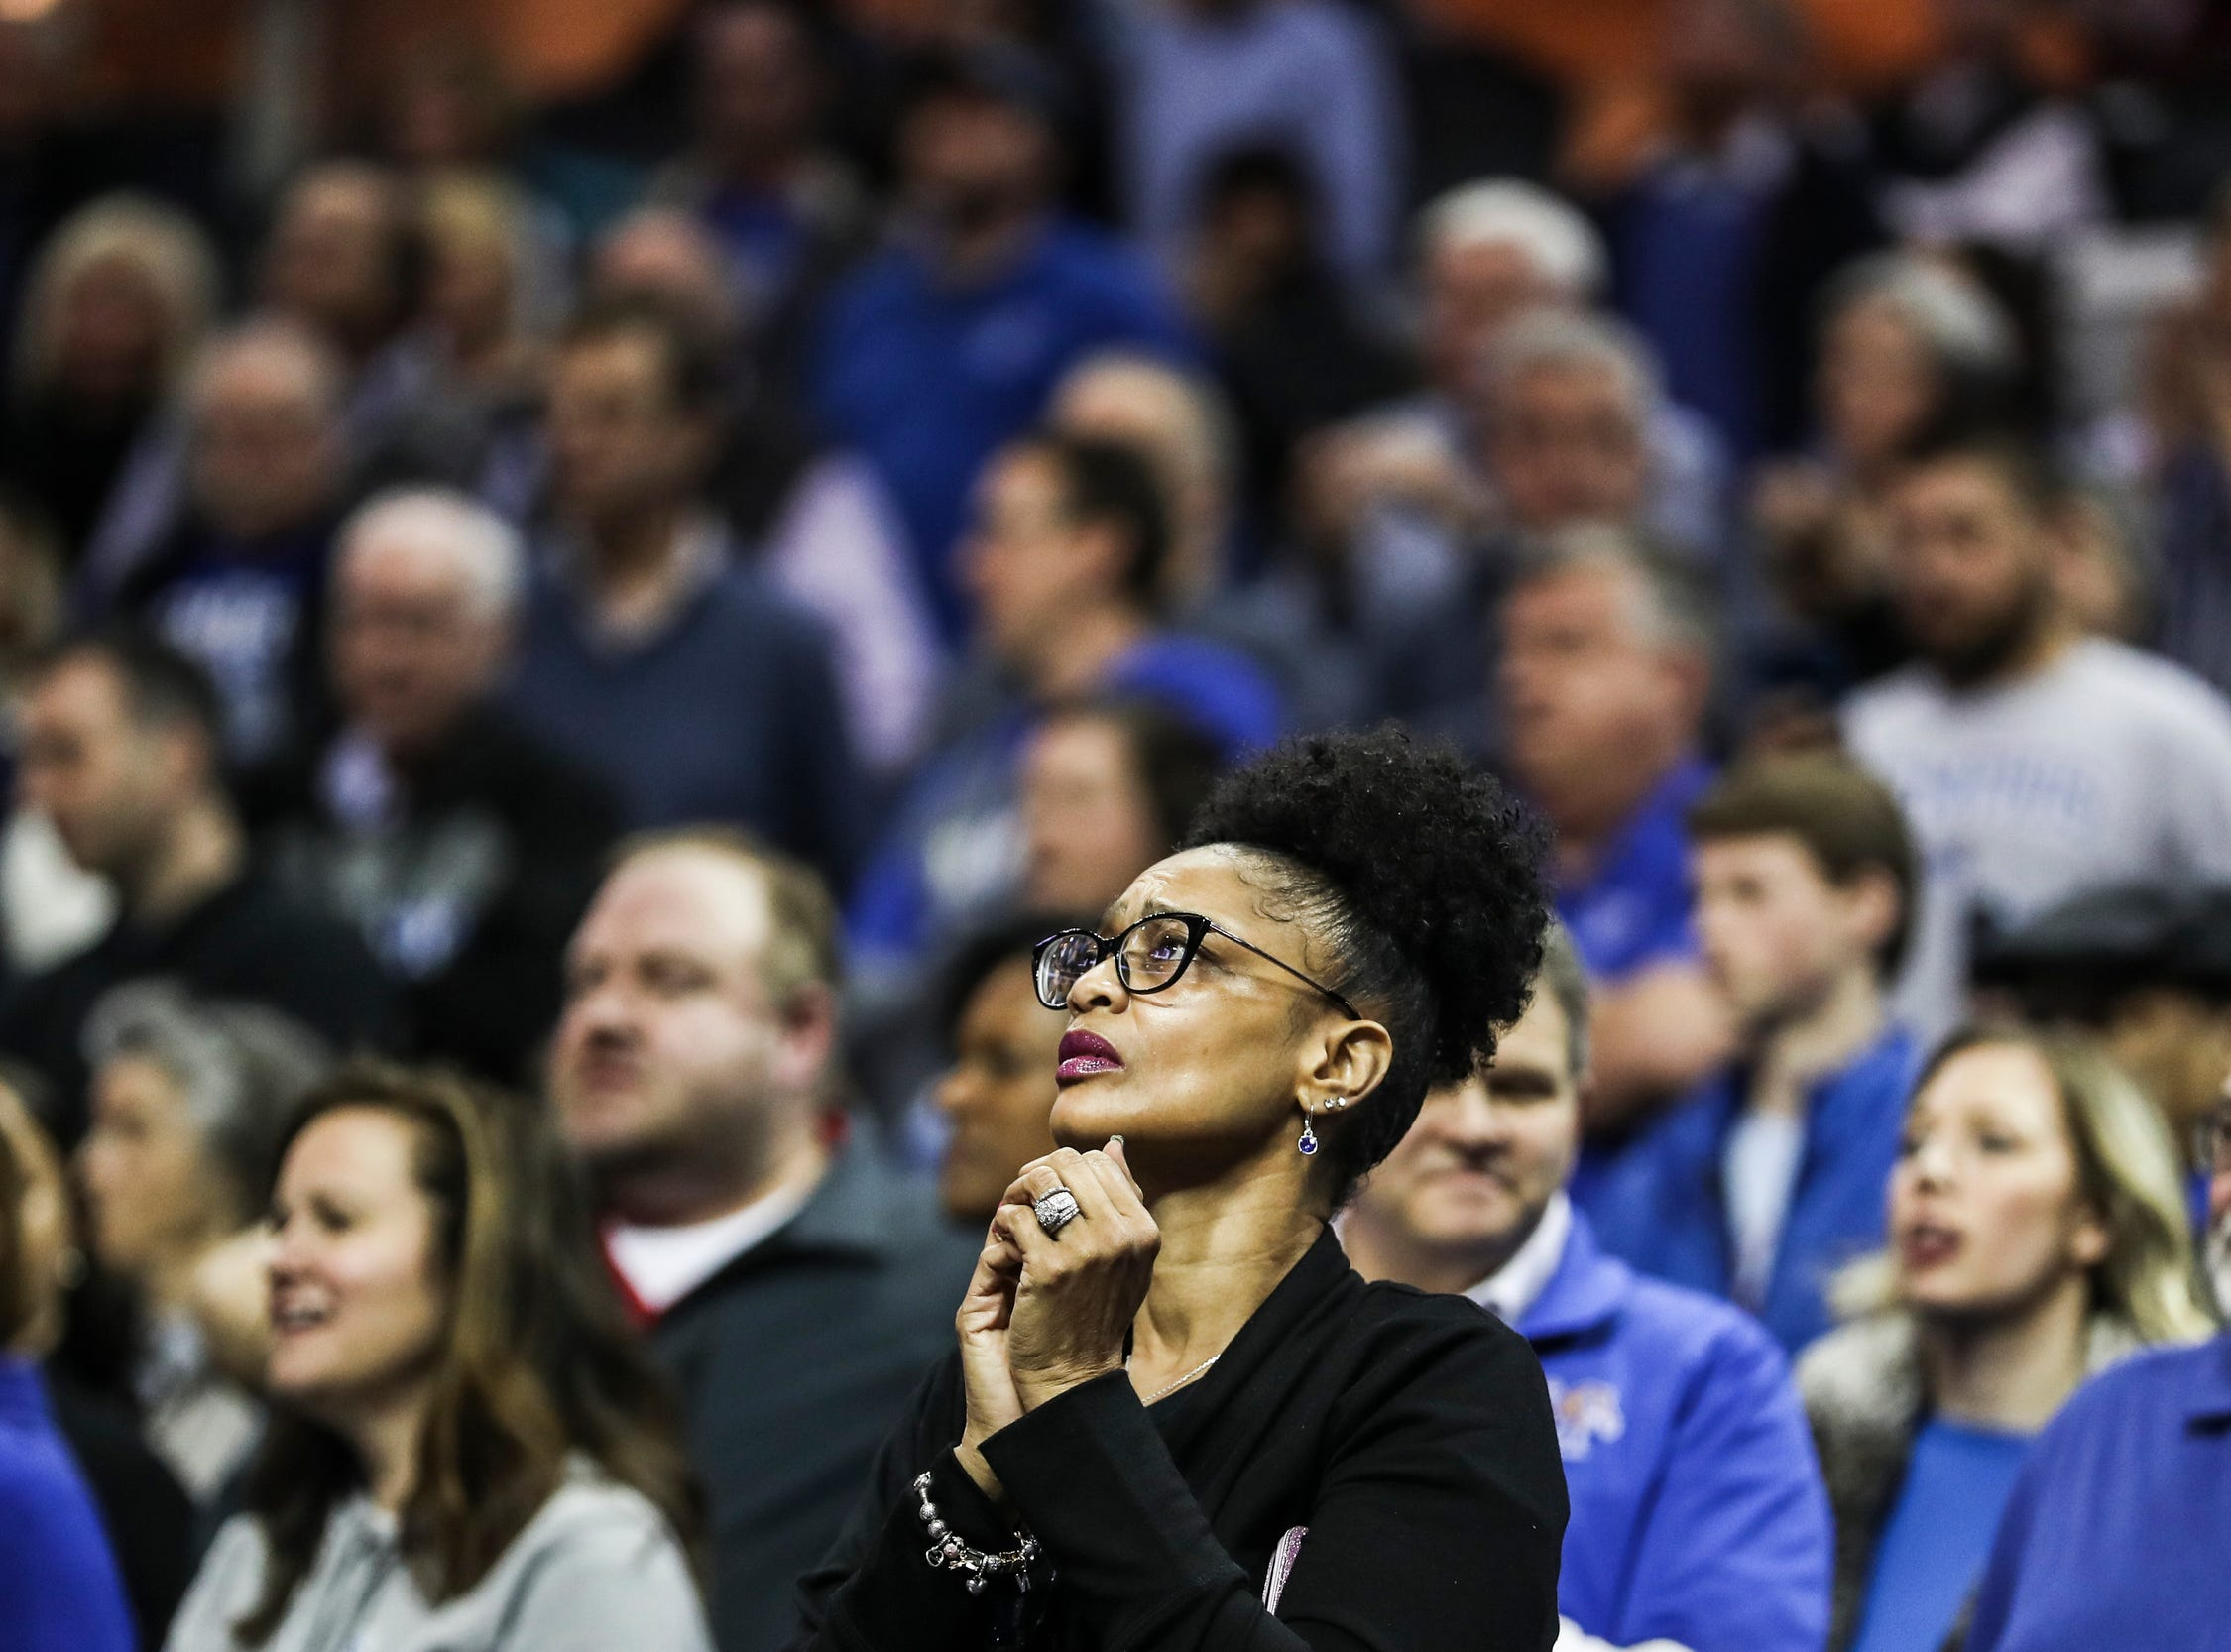 February 10, 2019 - A fan watches the final minutes of Sunday's game versus Connecticut at the FedExForum.